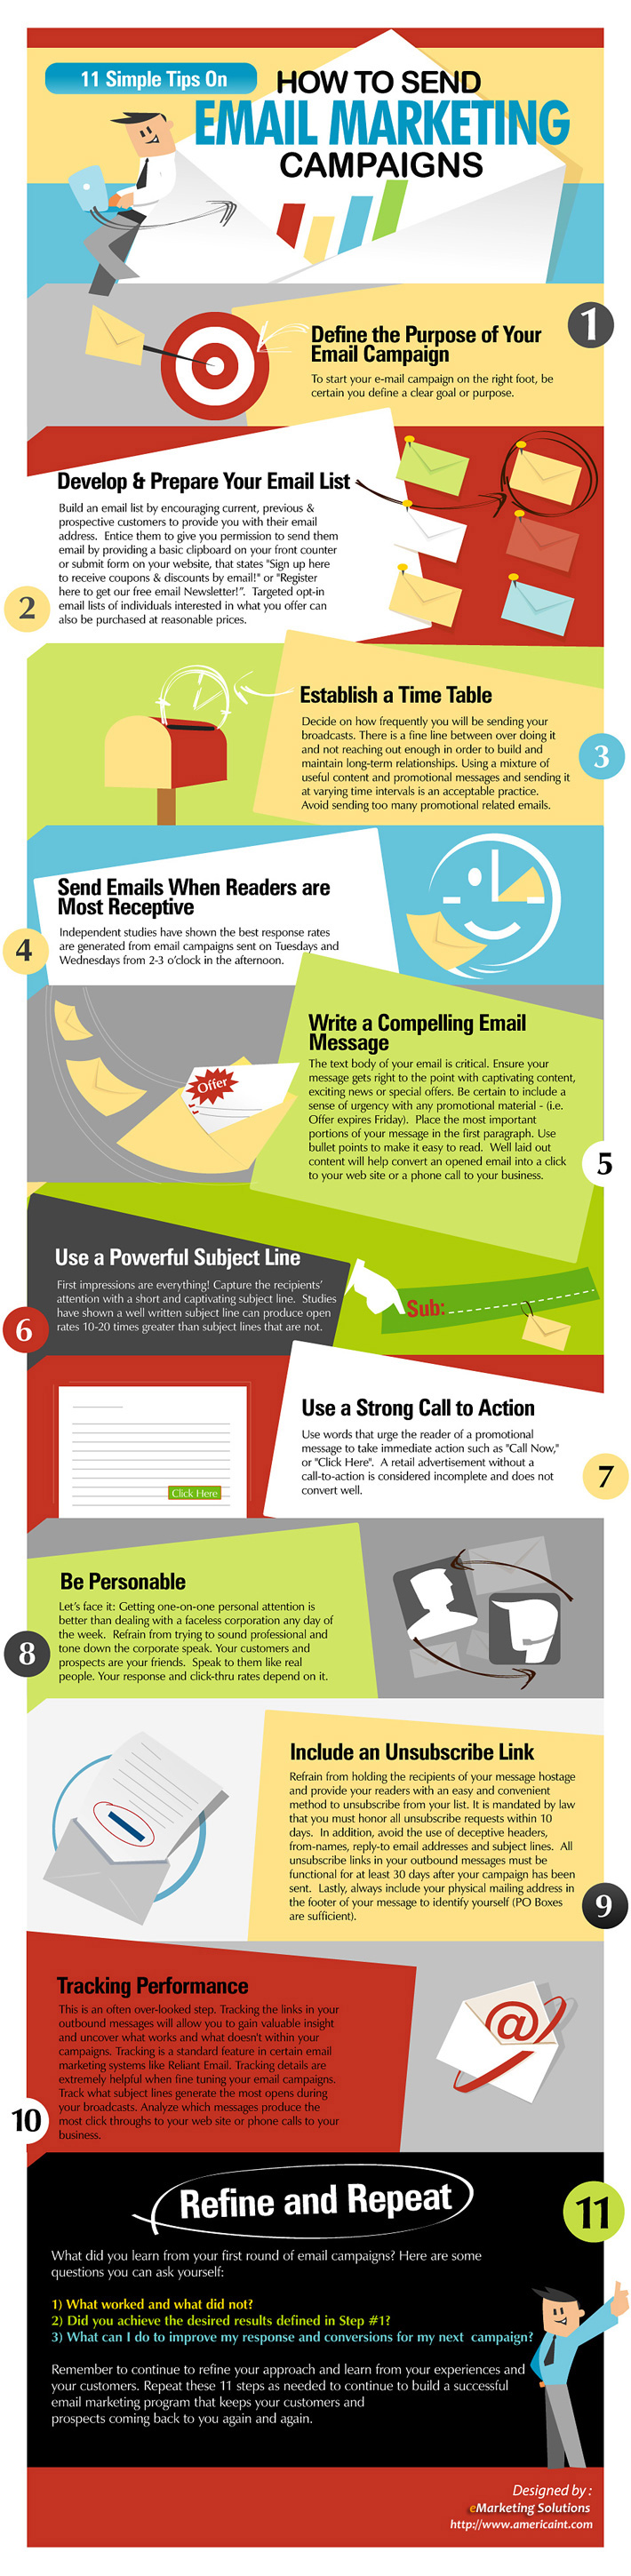 ultimate-email-marketing-guide-1